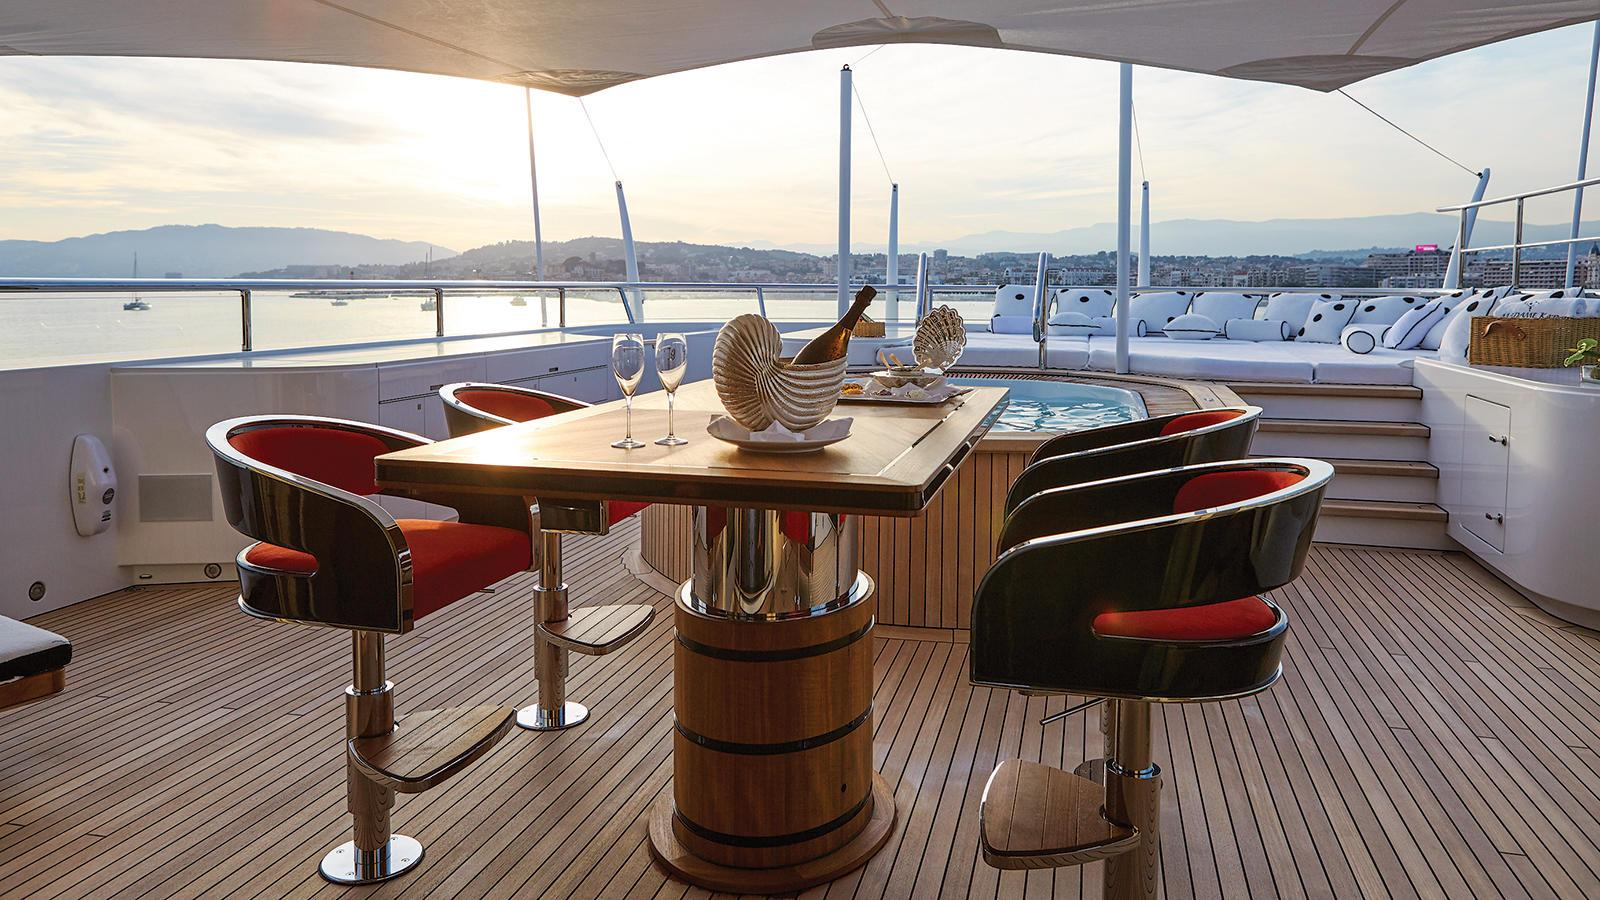 madame-kate-motor-yacht-amels-1999-62m-2015-seating-deck